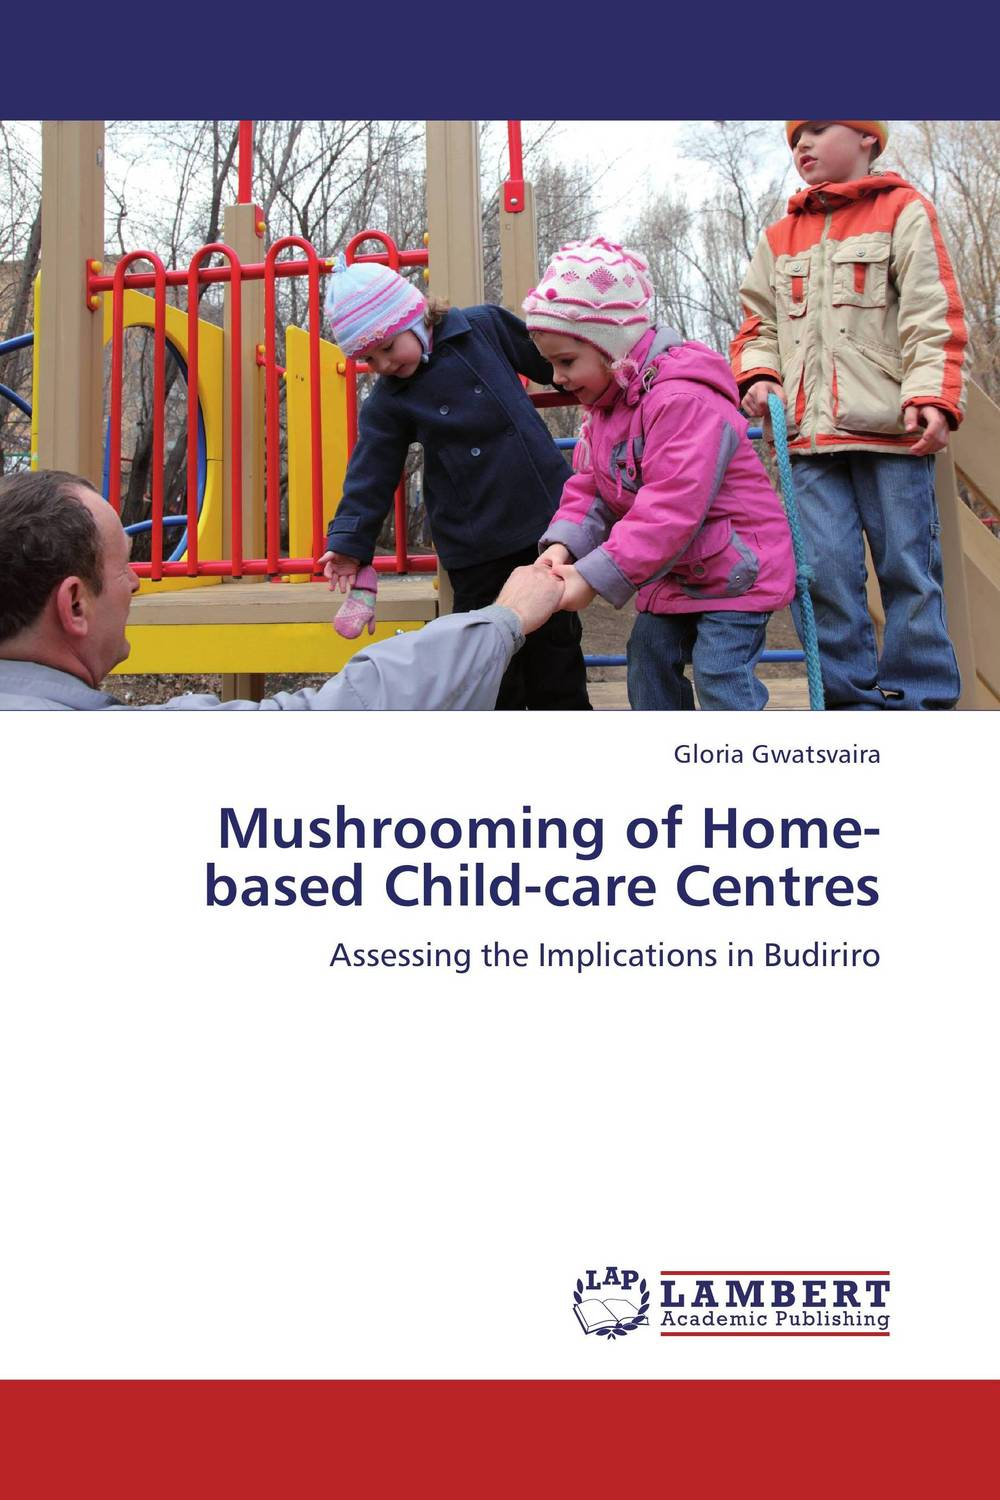 Mushrooming of Home-based Child-care Centres